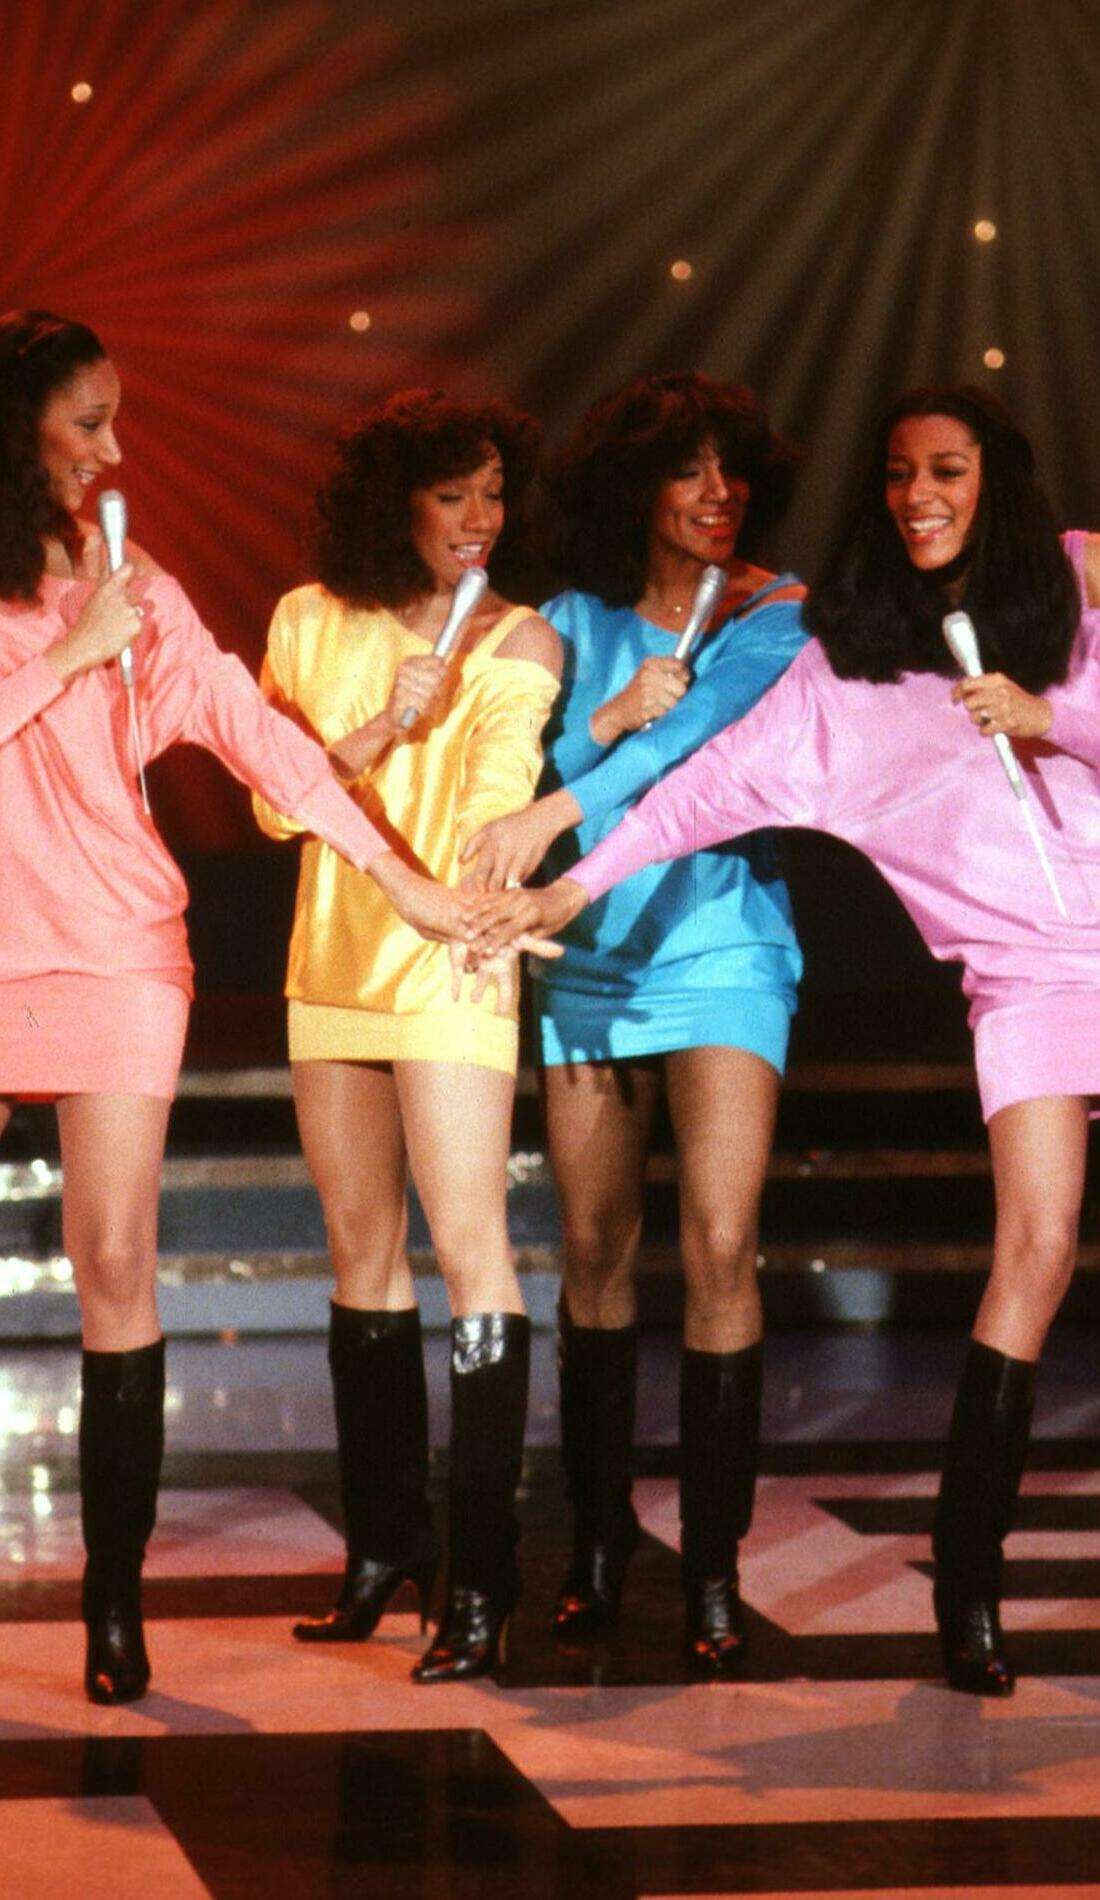 A Sister Sledge live event